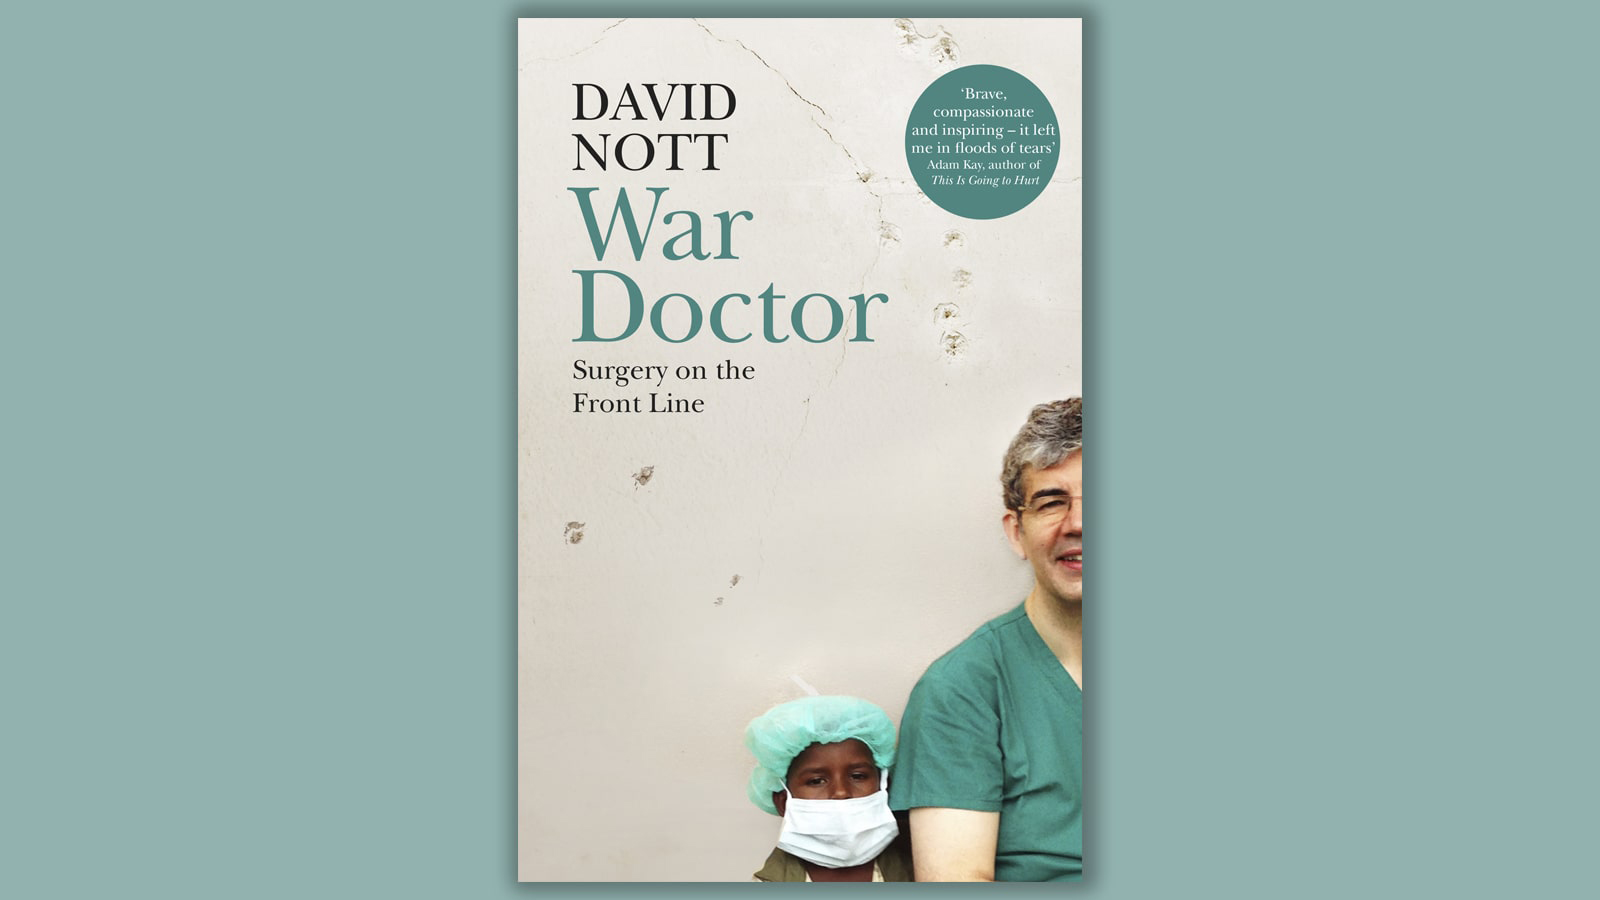 The David Nott Foundation is helping surgeons save lives in Syria and beyond: here's how you can hel